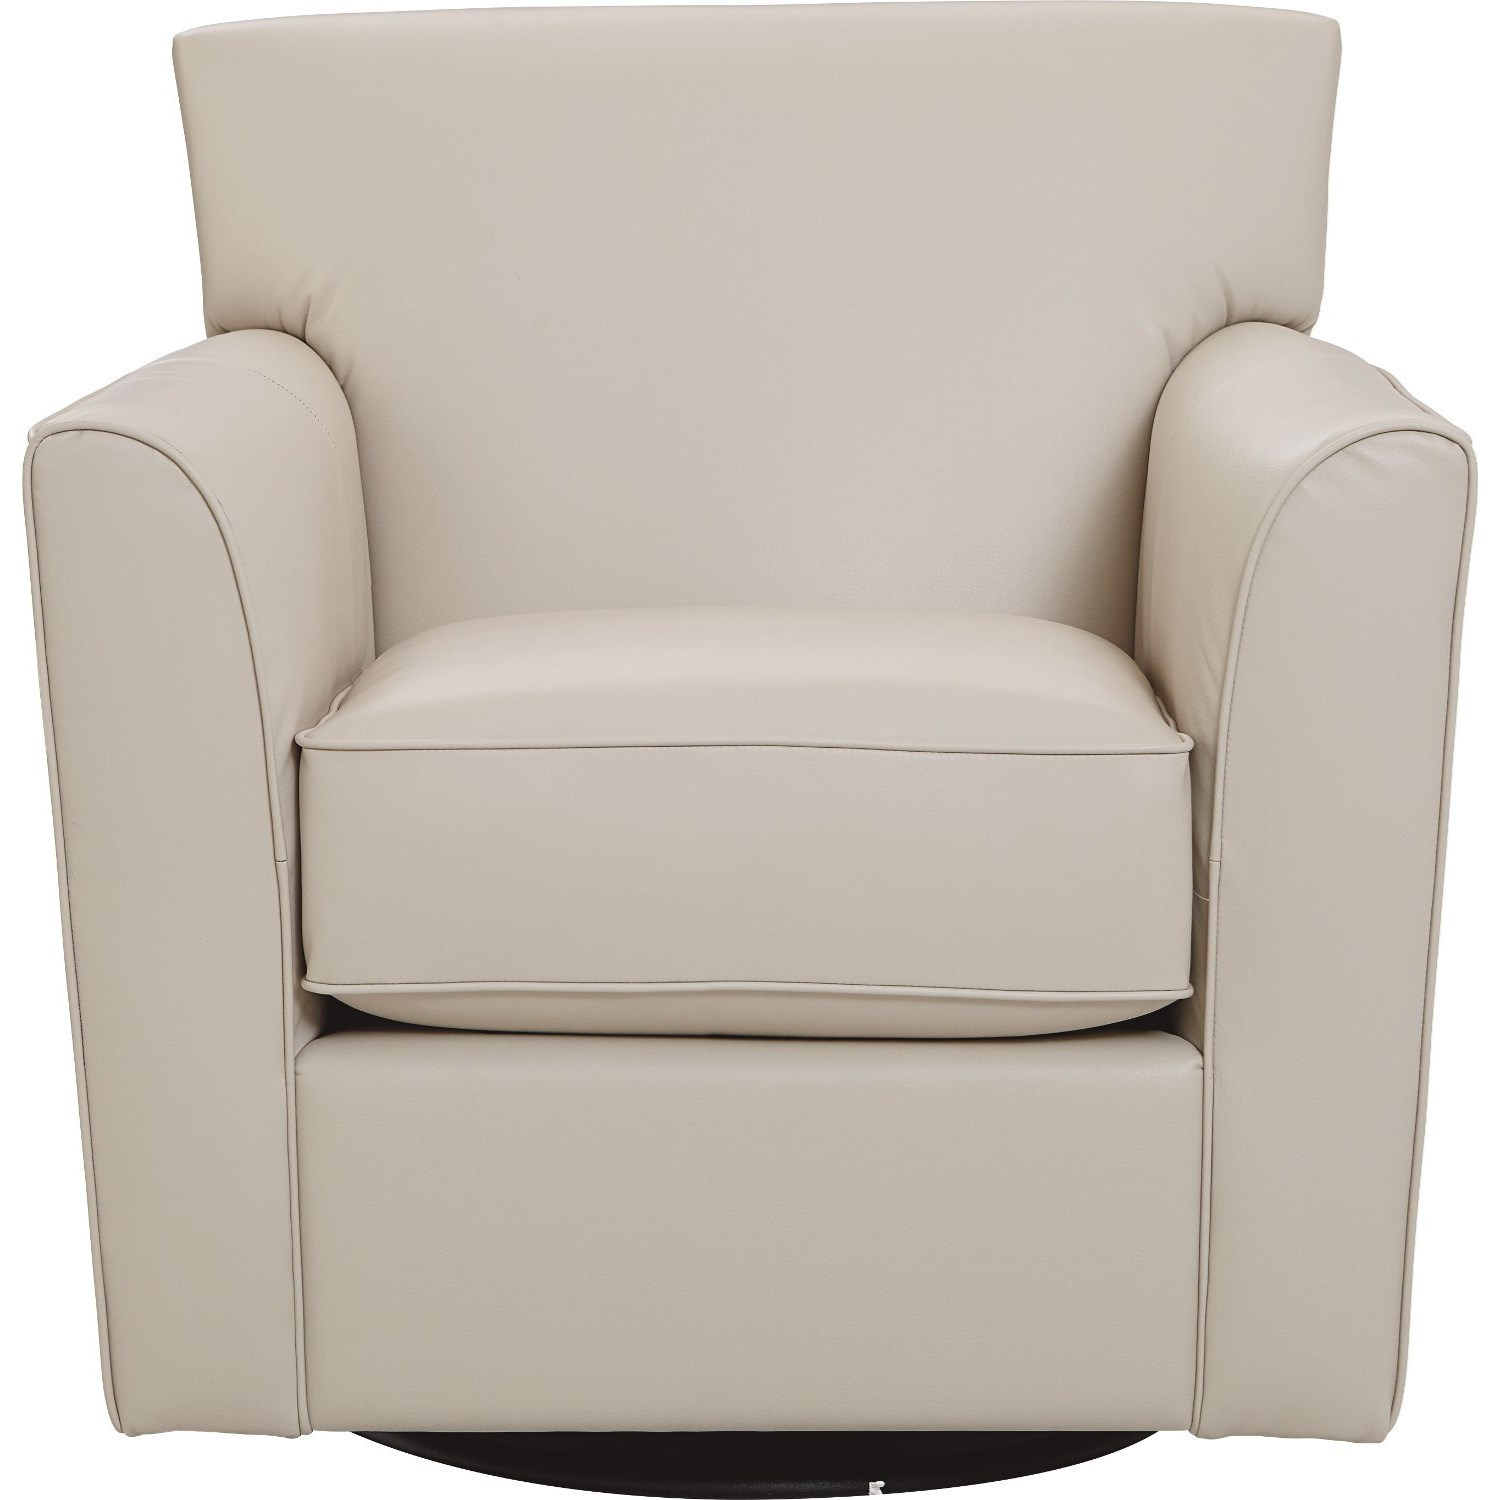 la z boy swivel chair best for spinal fusion chairs allegra with flared arms